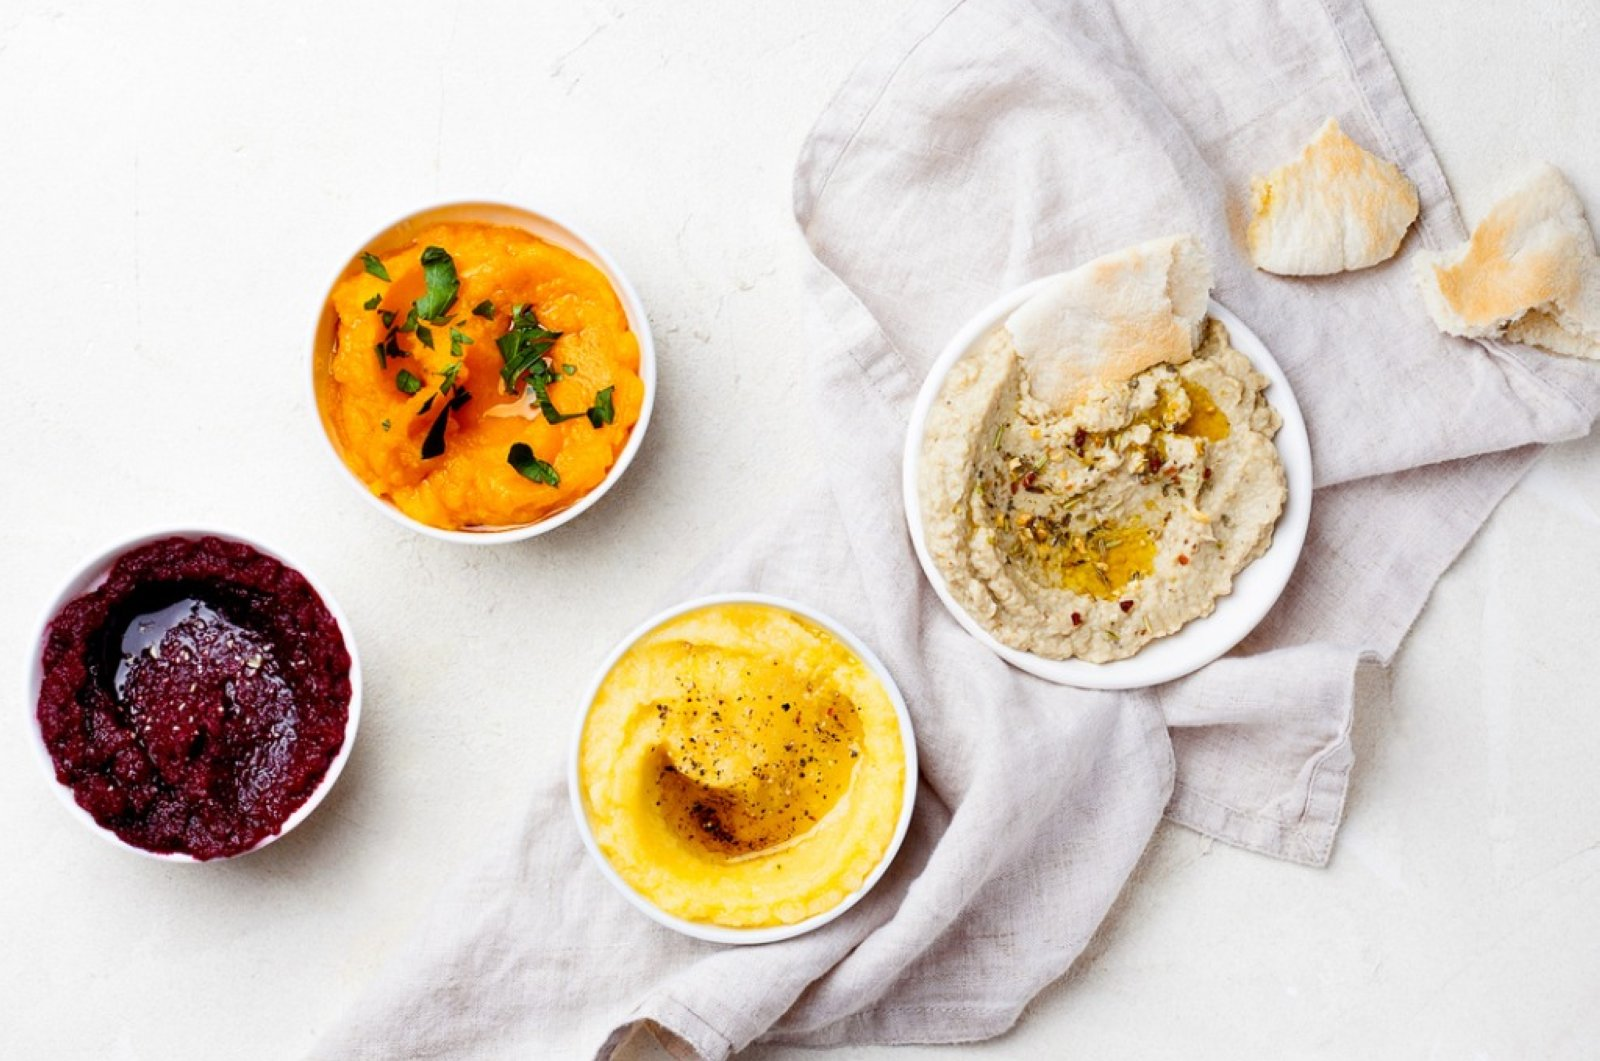 You can use beets, sweet potatoes and squash to make your own tasty mash. (iStock Photo)